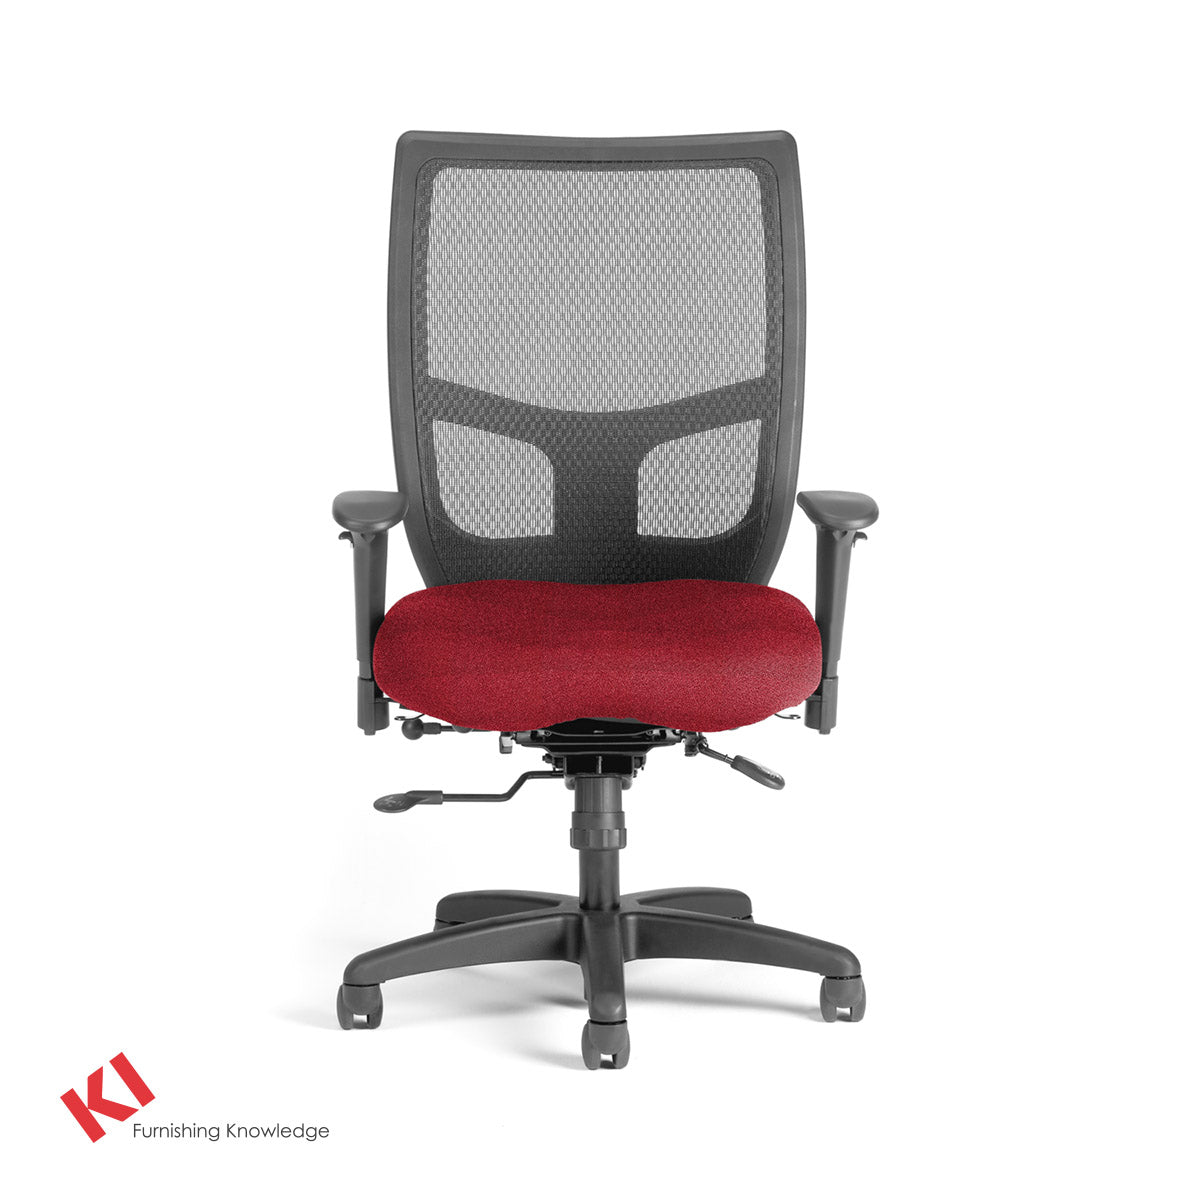 KI Impress Ultra Mid Back Task Chair Red Pepper